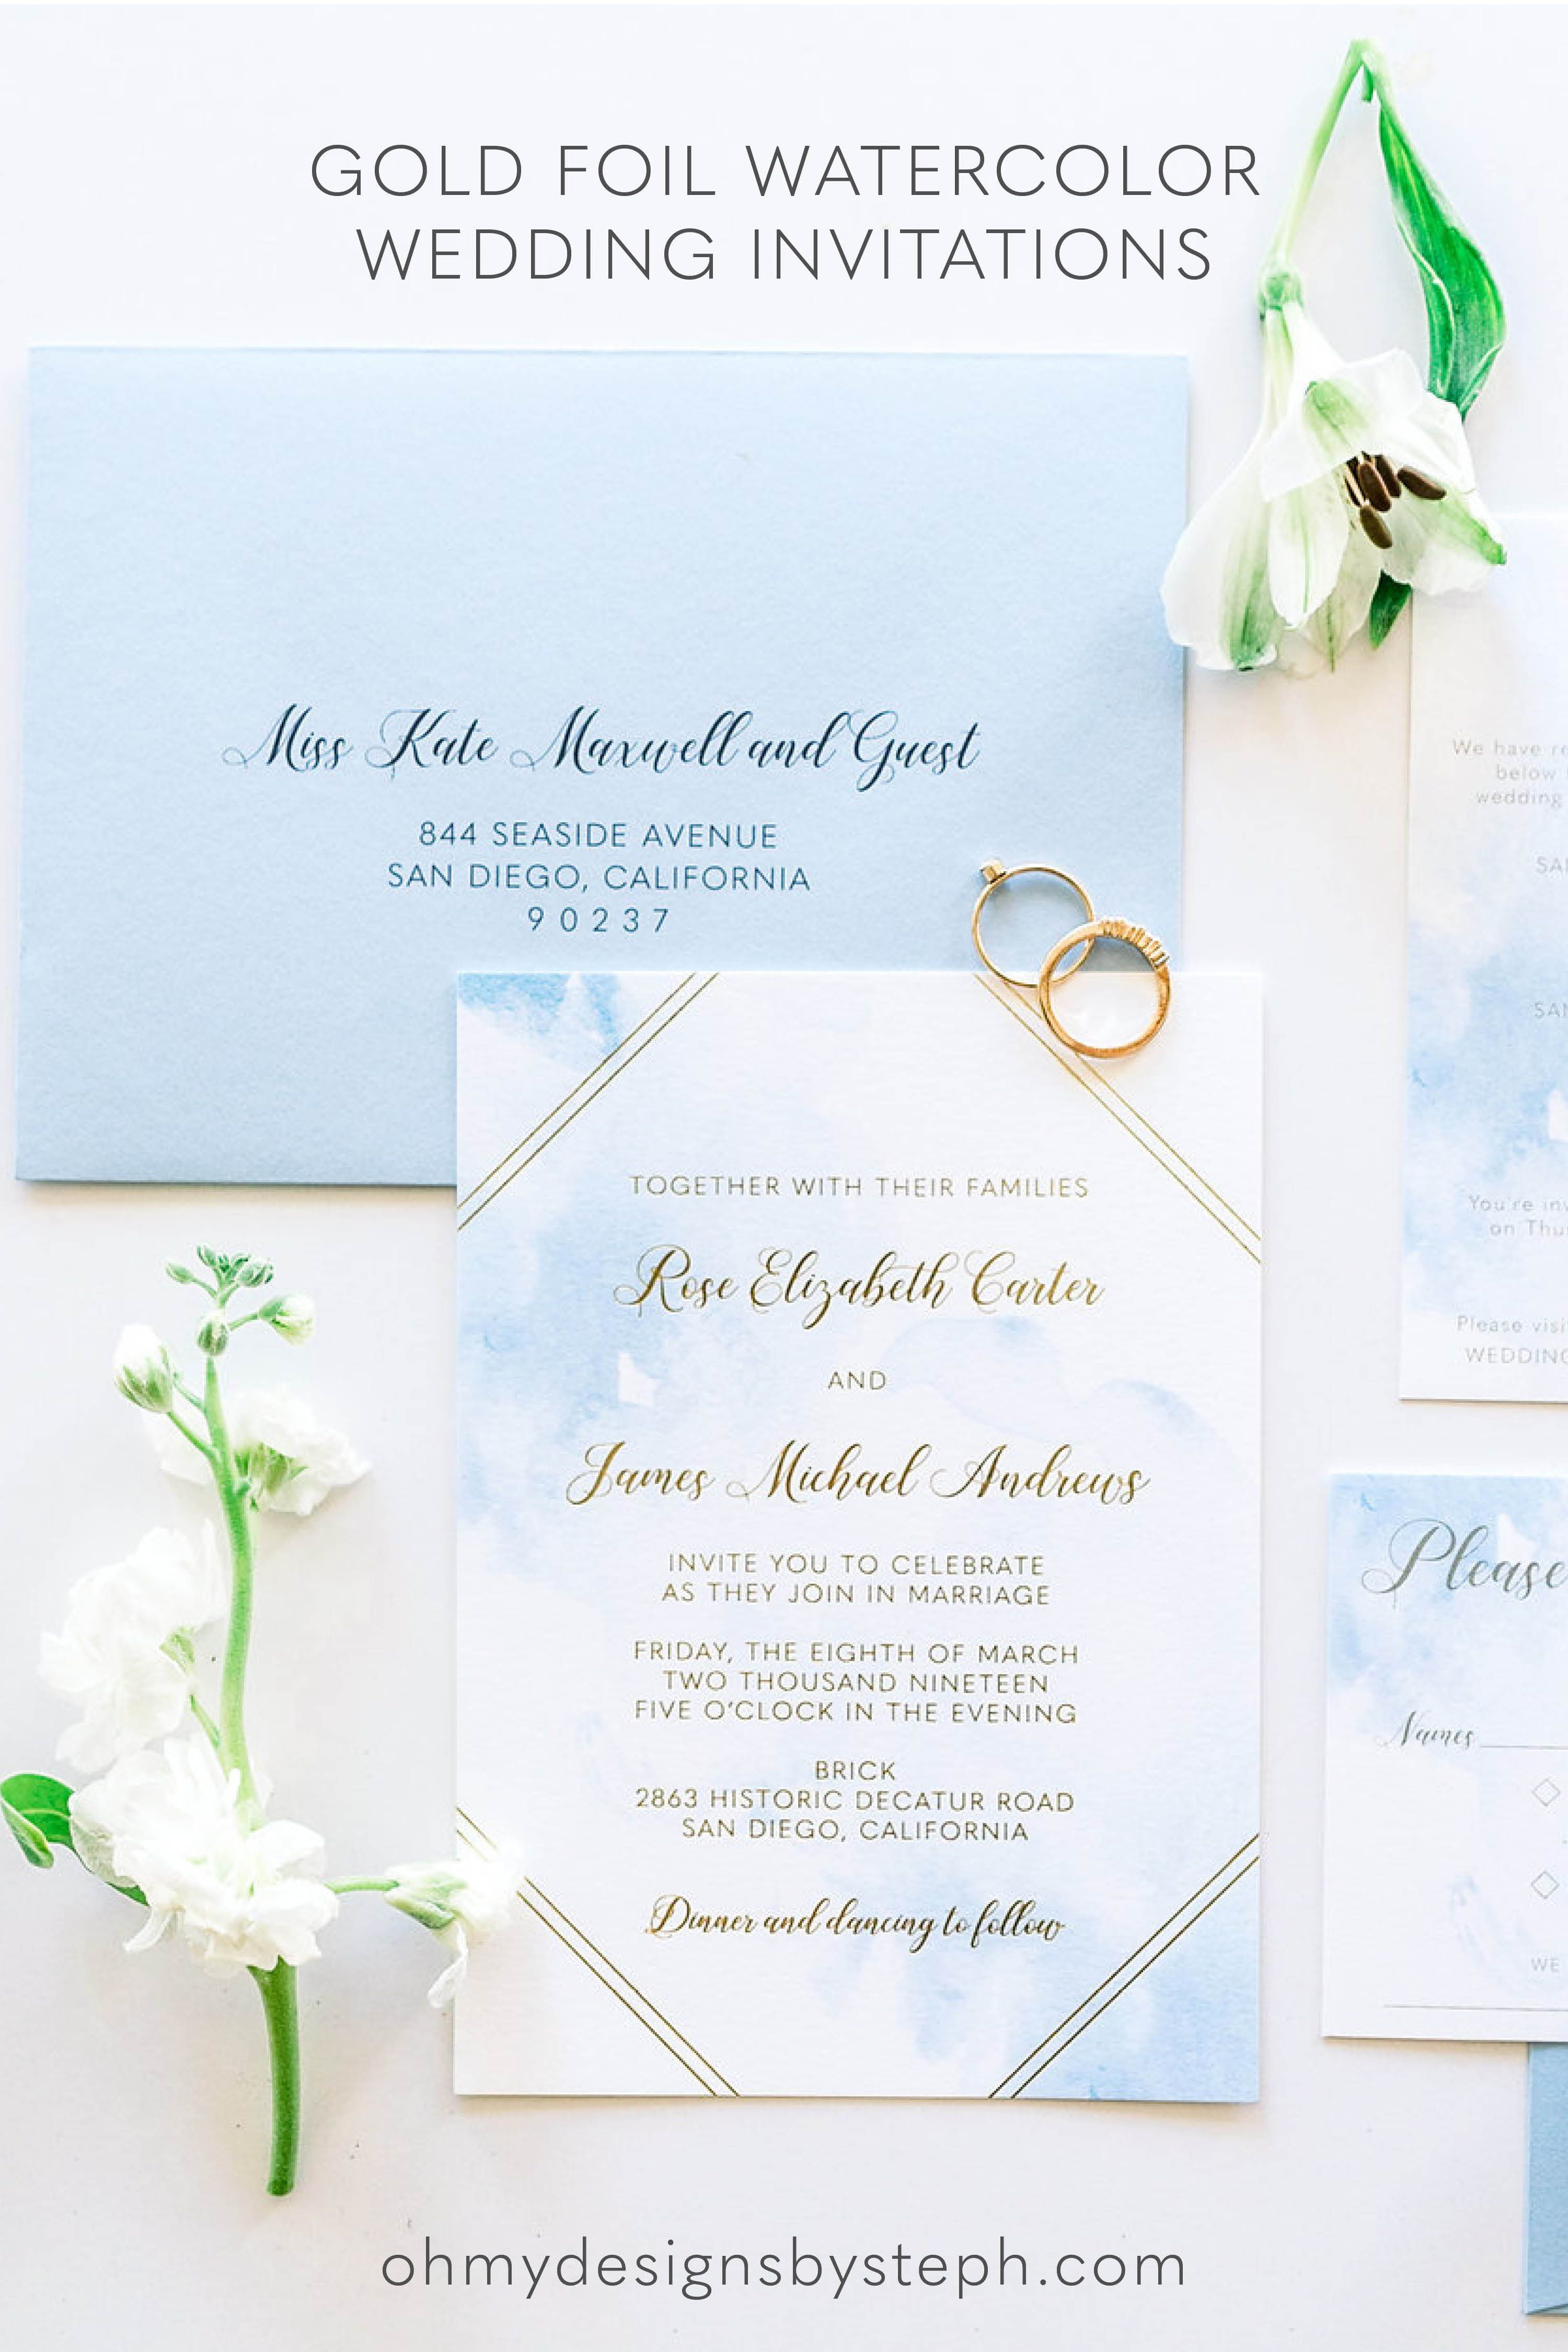 Gold Foil Watercolor Wedding Invitation Sample Watercolor